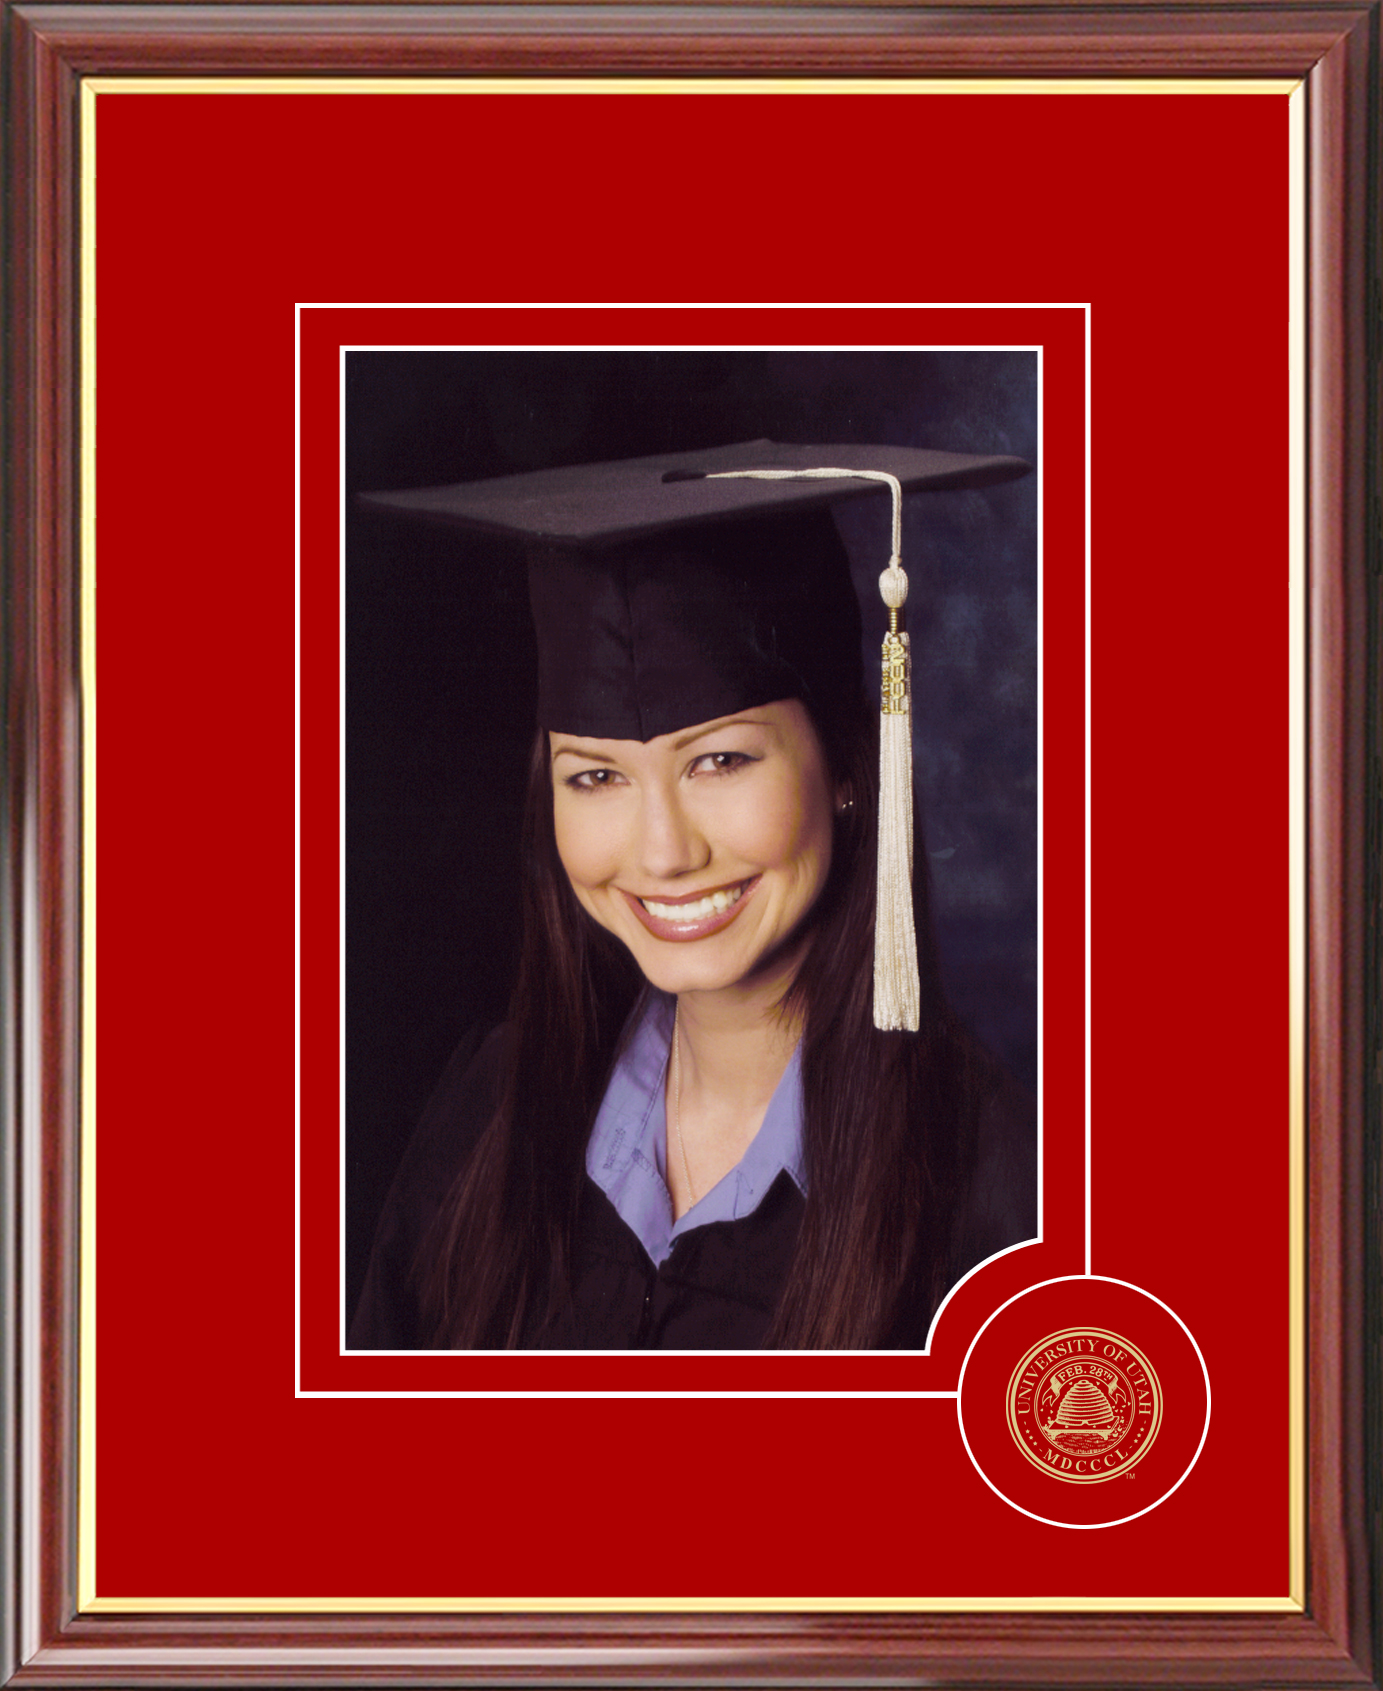 University of Utah 5X7 Graduate Portrait Frame